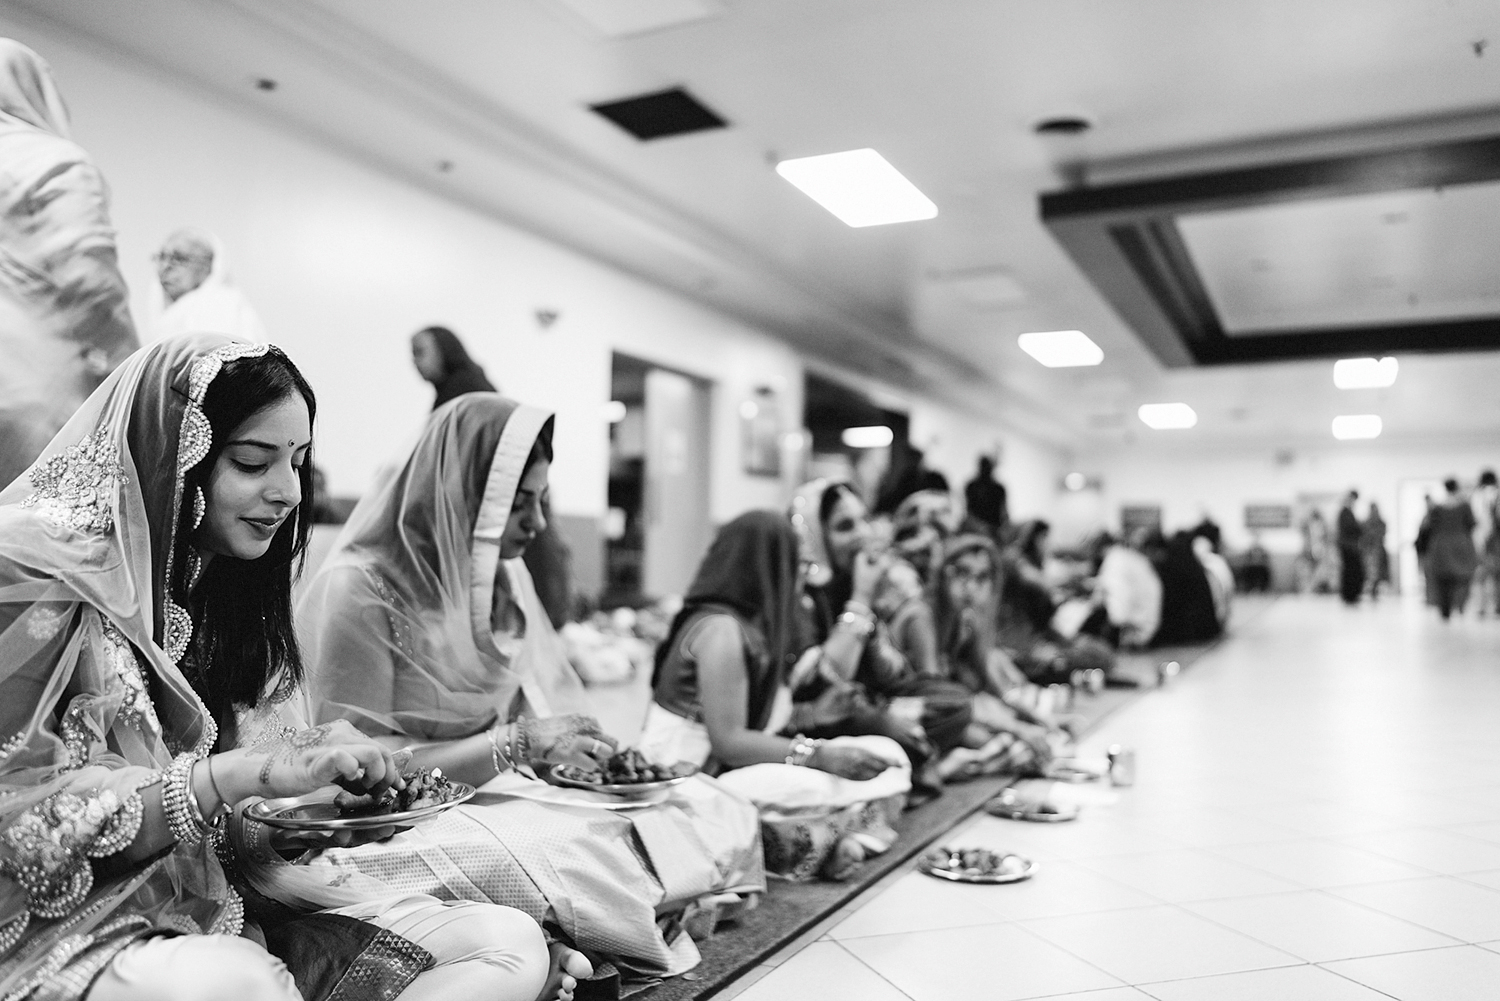 Toronto-Photojournalism-wedding-photographers-3B-Photography-Candid-Documentary-Film-Photography-Analog-Ontario-Hamilton-Port-Perry-Venue-temple-ceremony-sikh-pre-ceremony-traditions-meal-moments-guests-eating.jpg